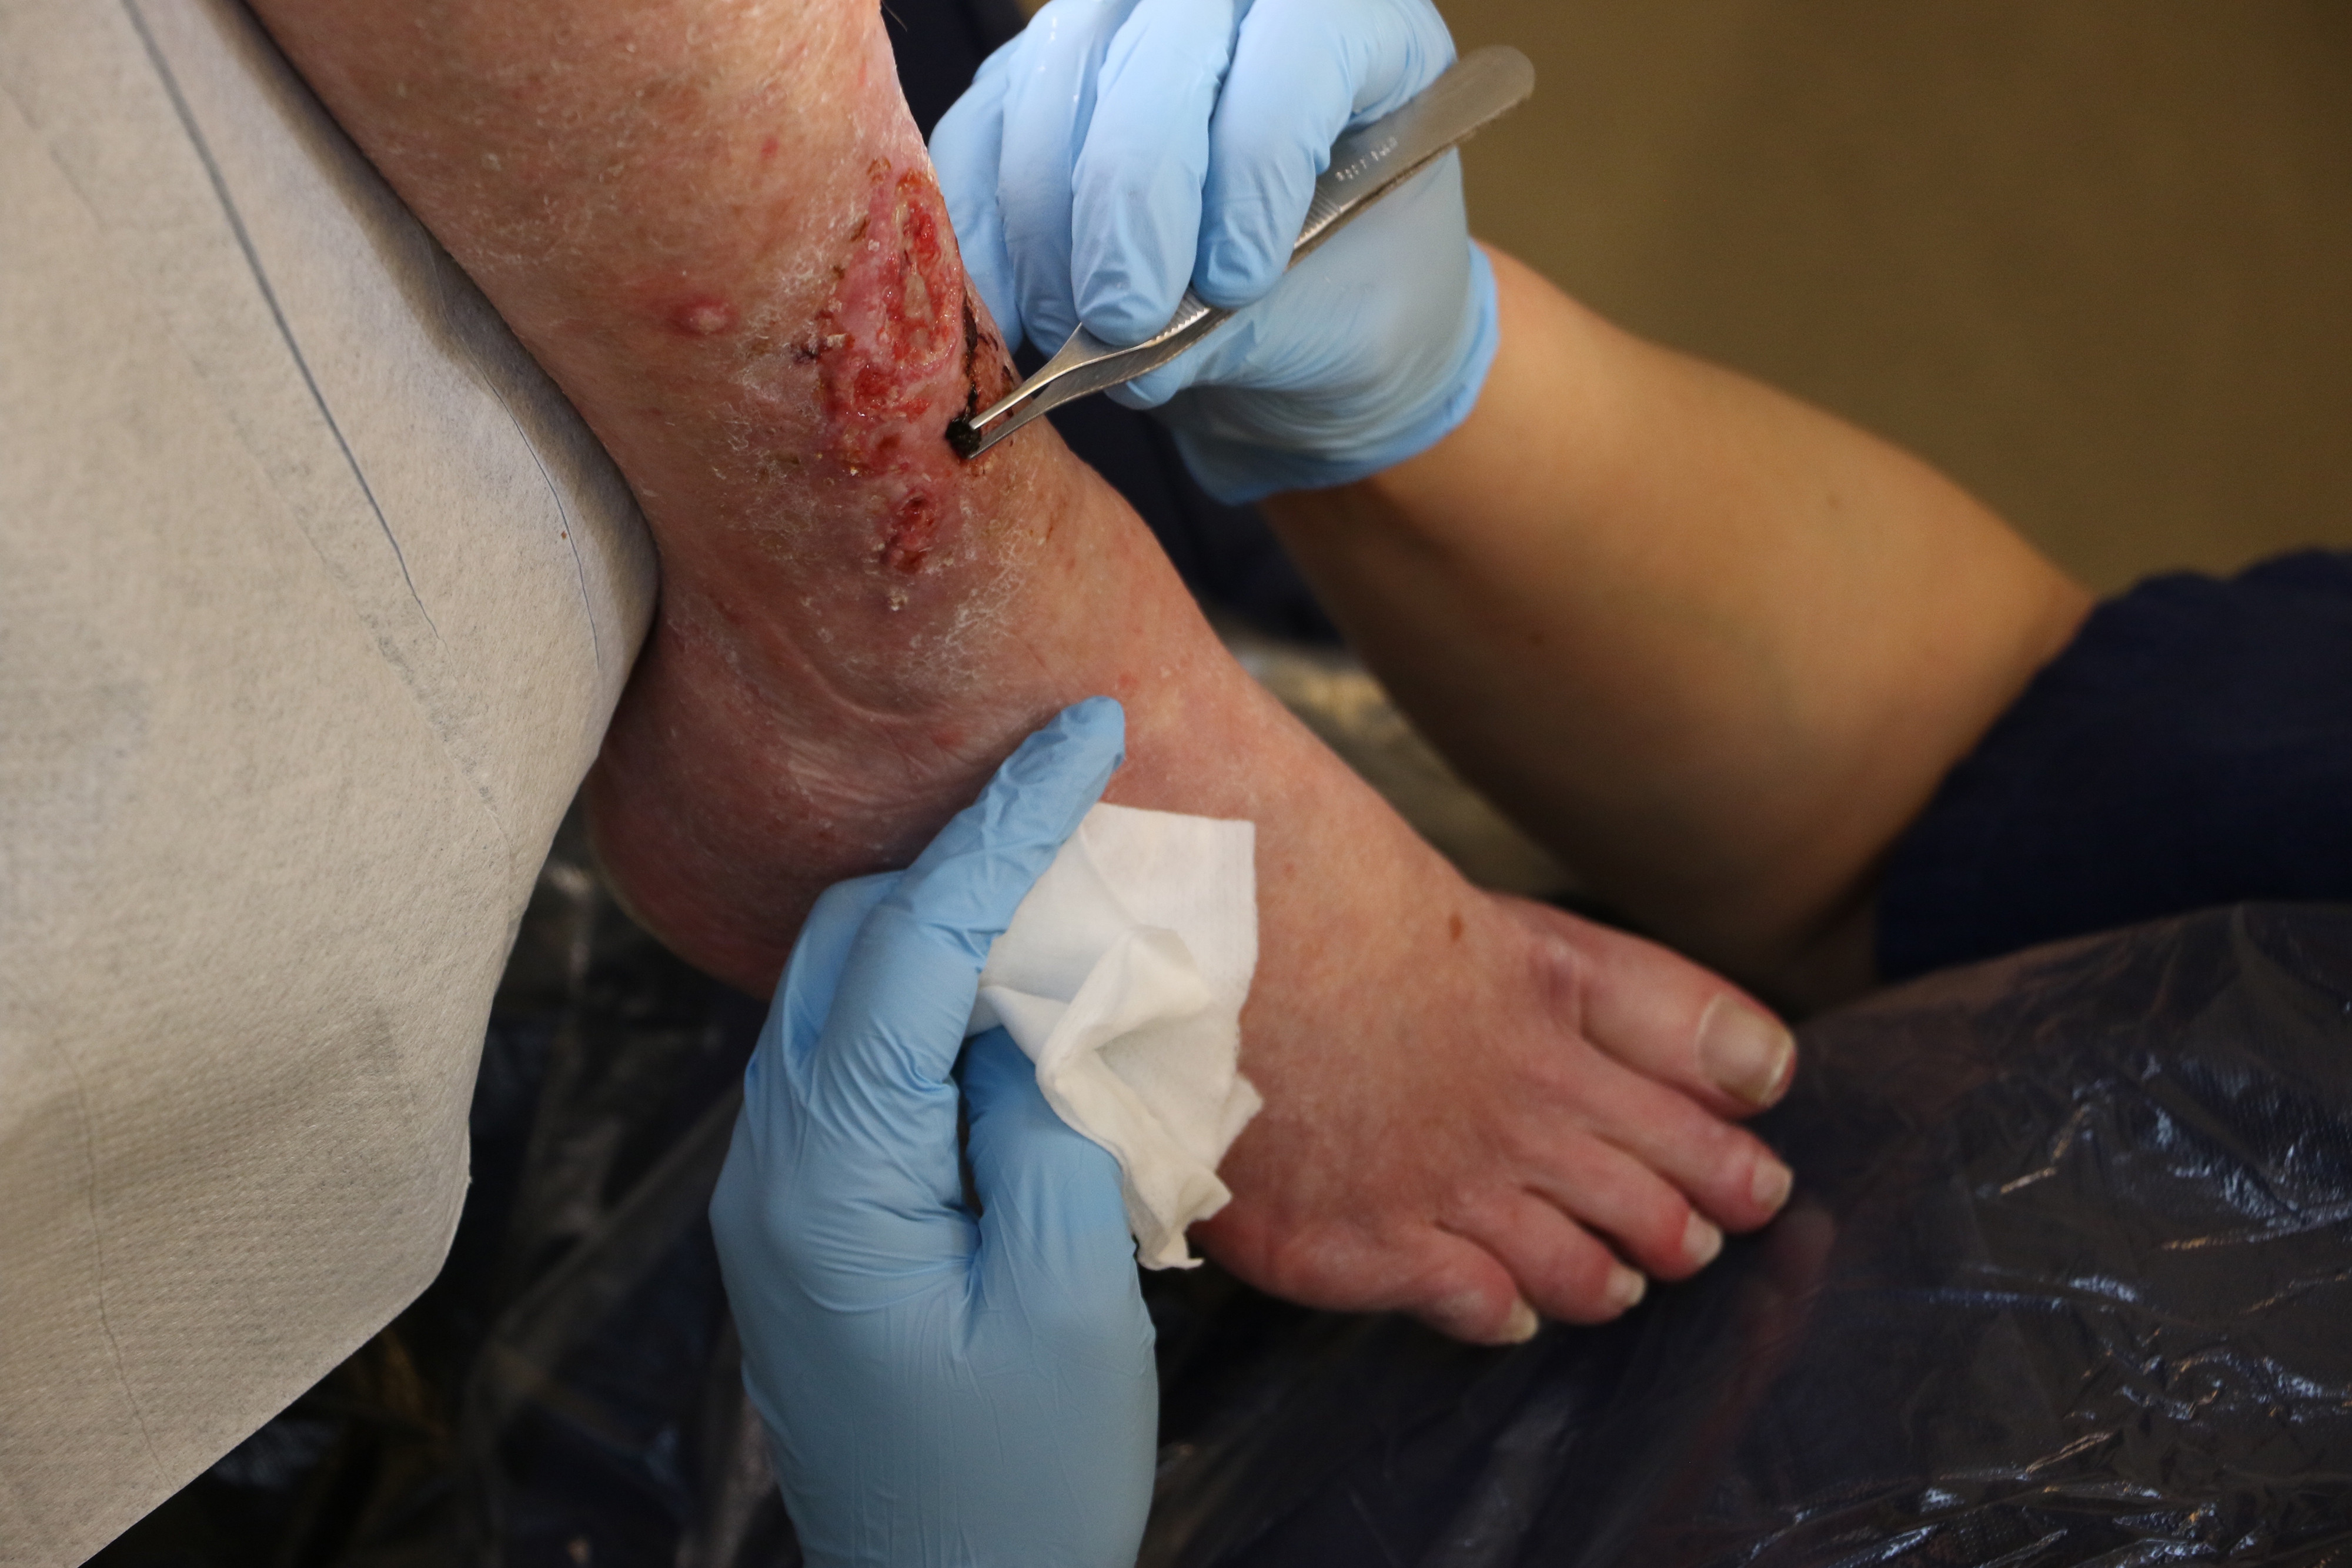 Pressure, Vascular or Diabetic Wounds - Does Type Matter? - Recorded